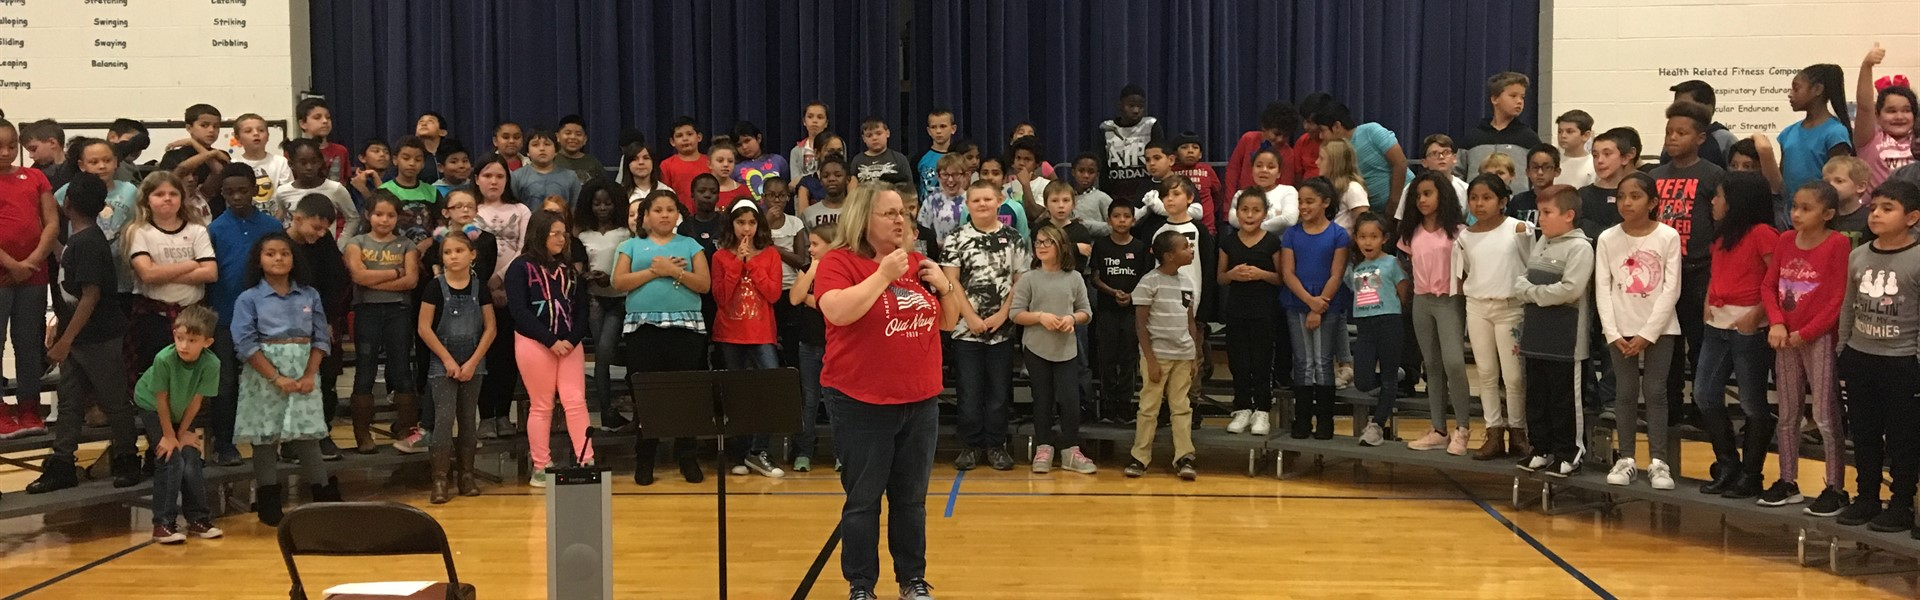 4TH GRADE VETERANS DAY PERFORMANCE